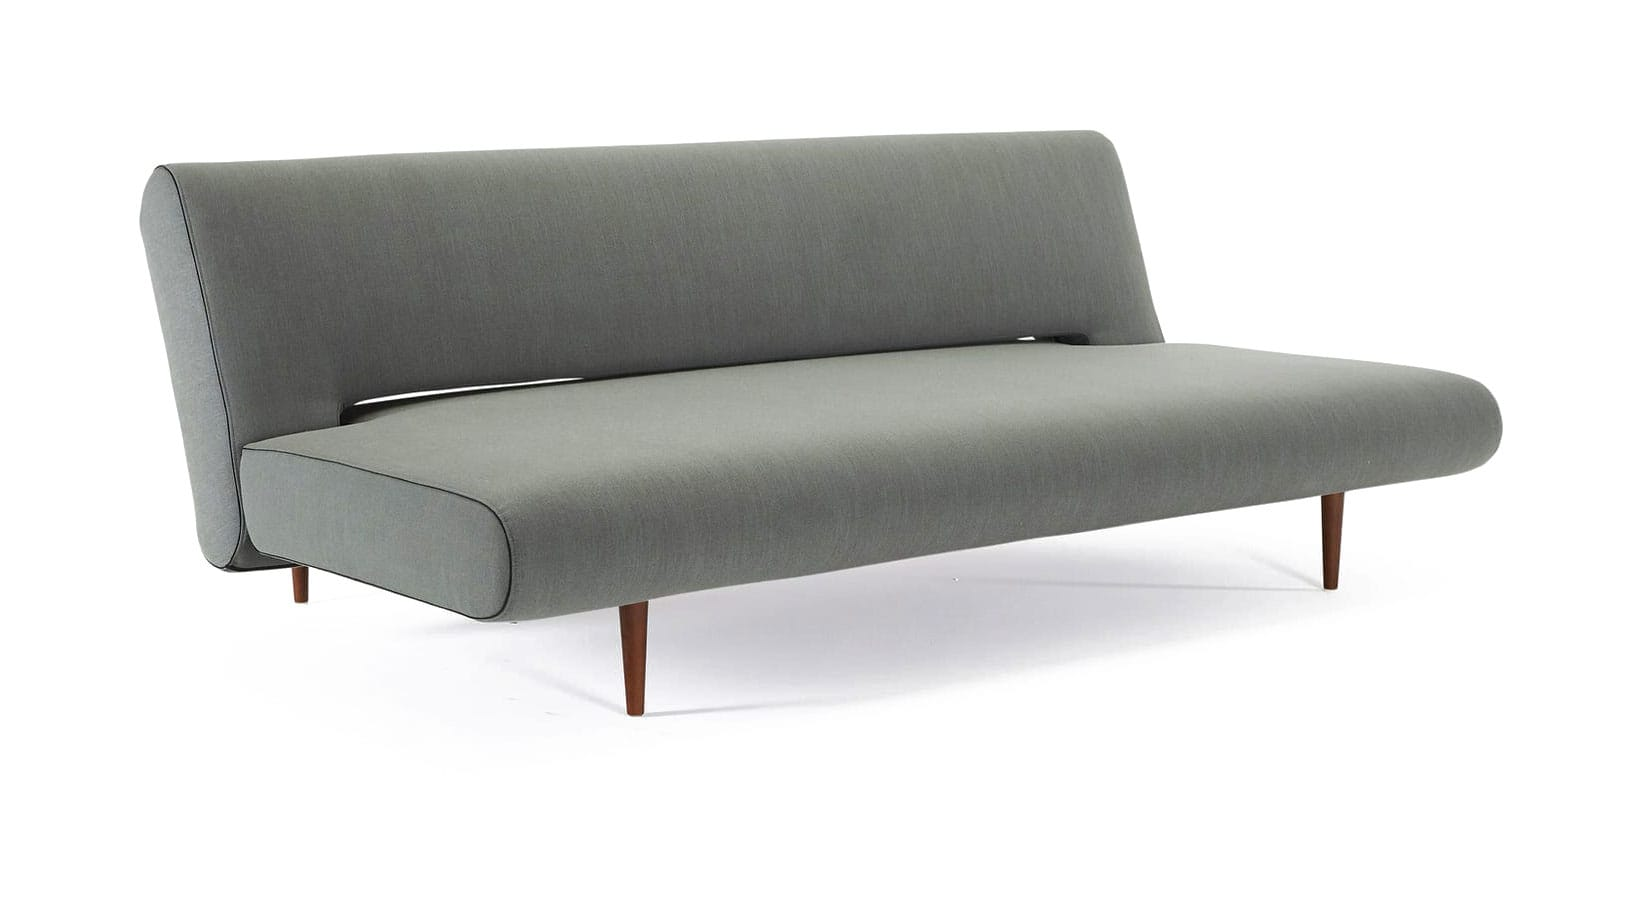 Unfurl Lounger Sofa Bed Full Size